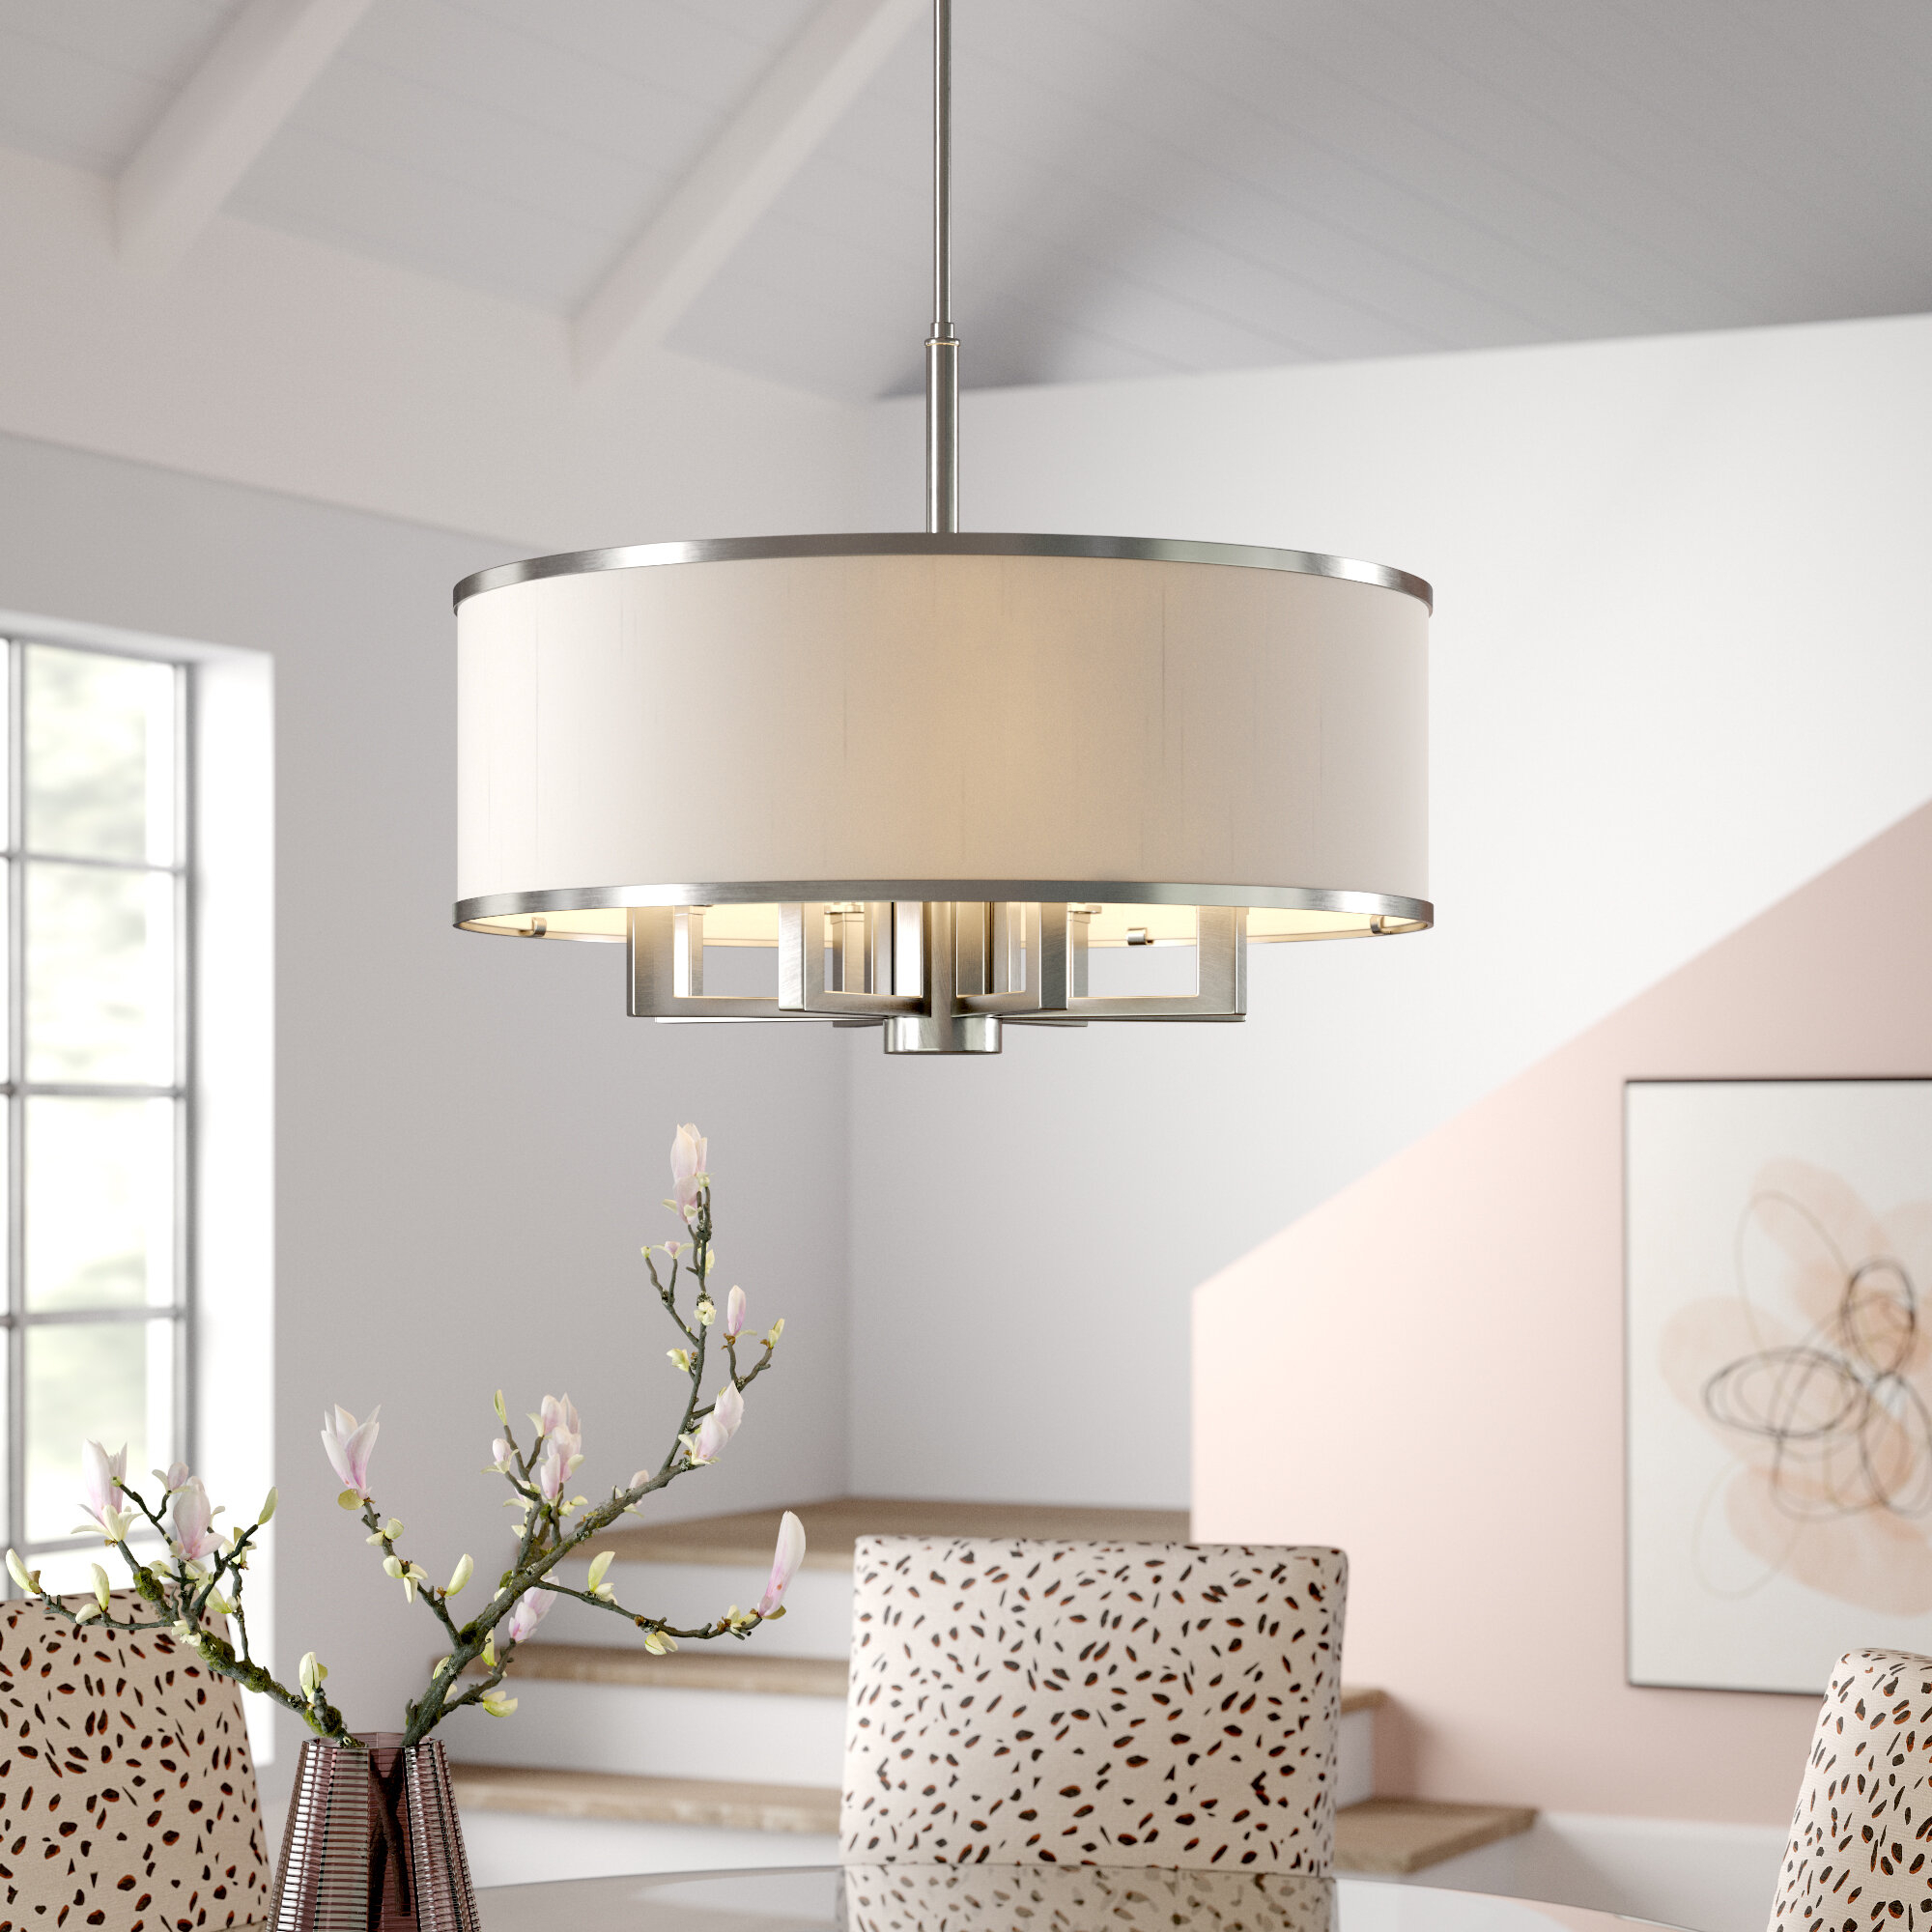 Breithaup 7 Light Drum Chandelier & Reviews | Joss & Main Pertaining To Alina 5 Light Drum Chandeliers (View 20 of 30)